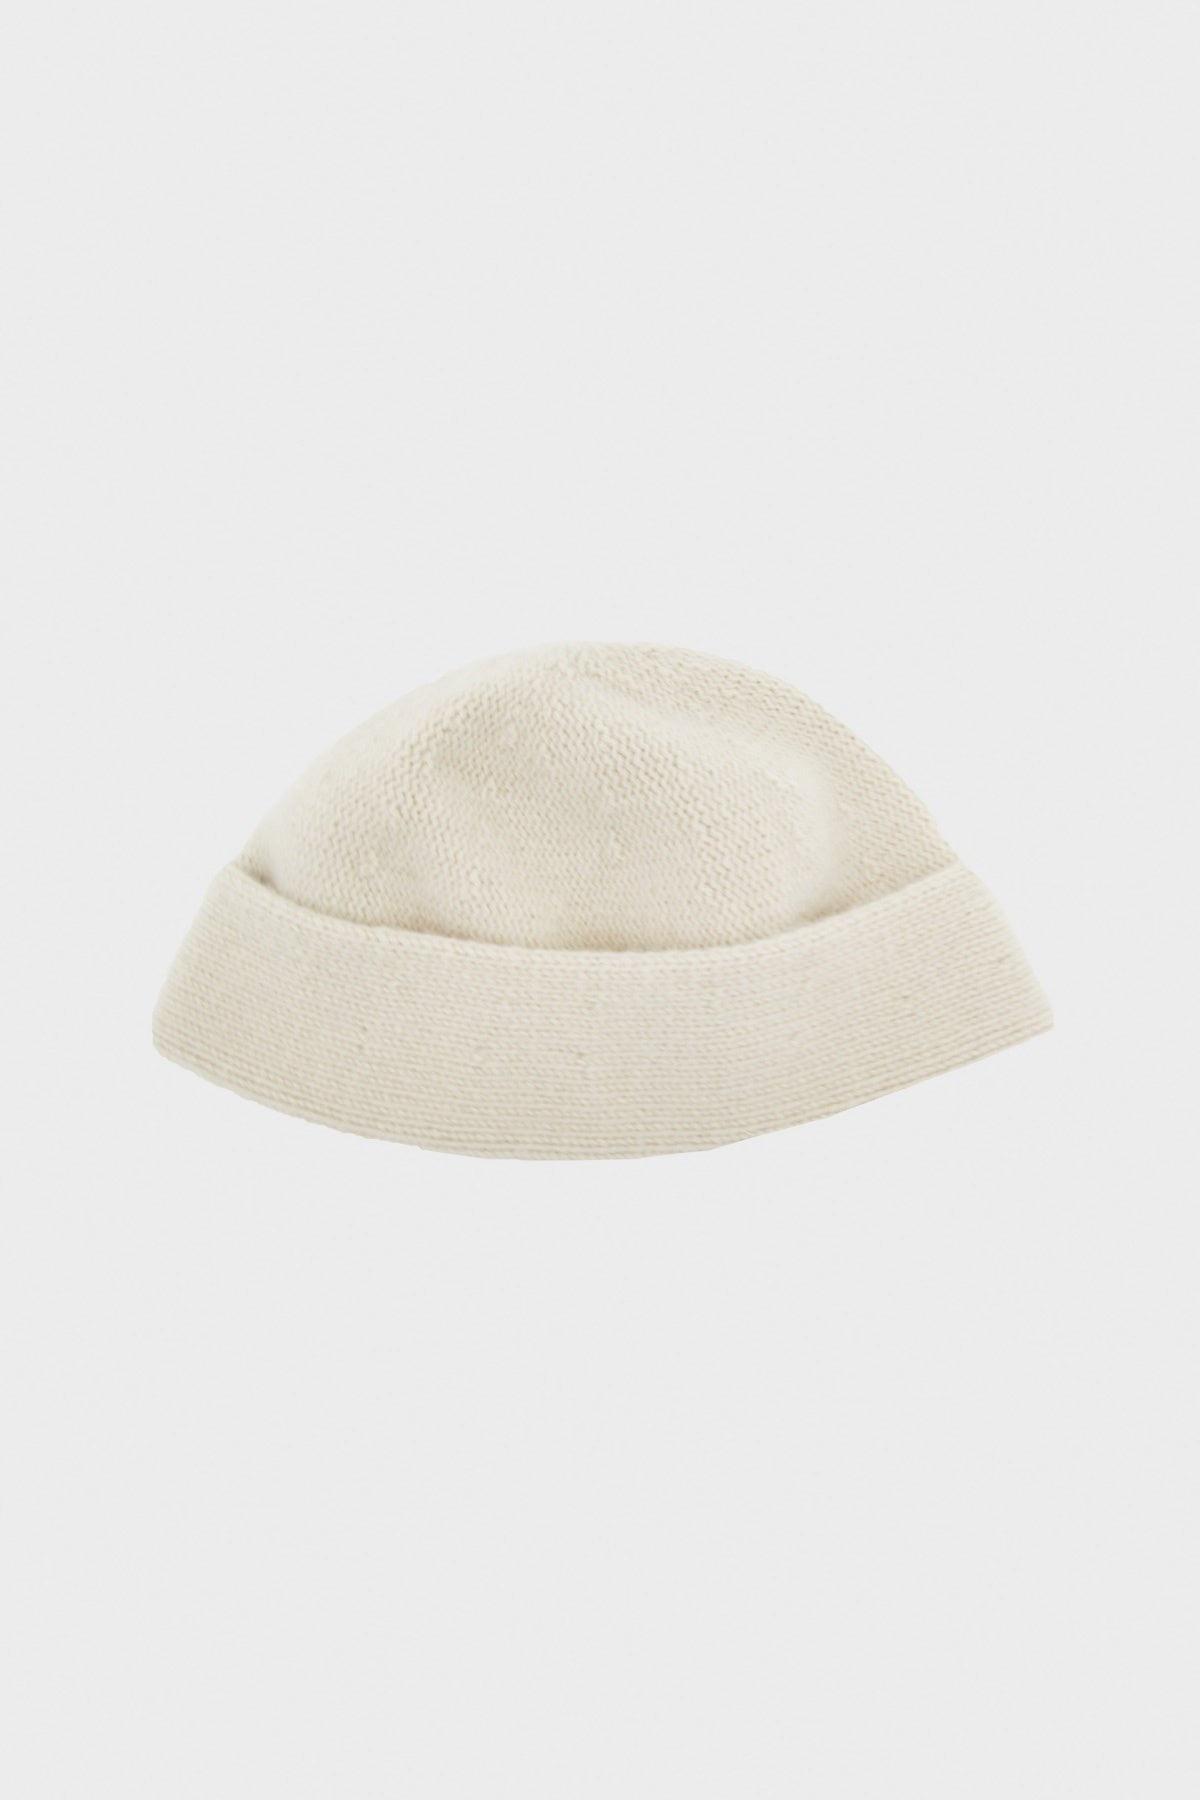 Cableami - Cashmere Beanie - Ivory - Canoe Club